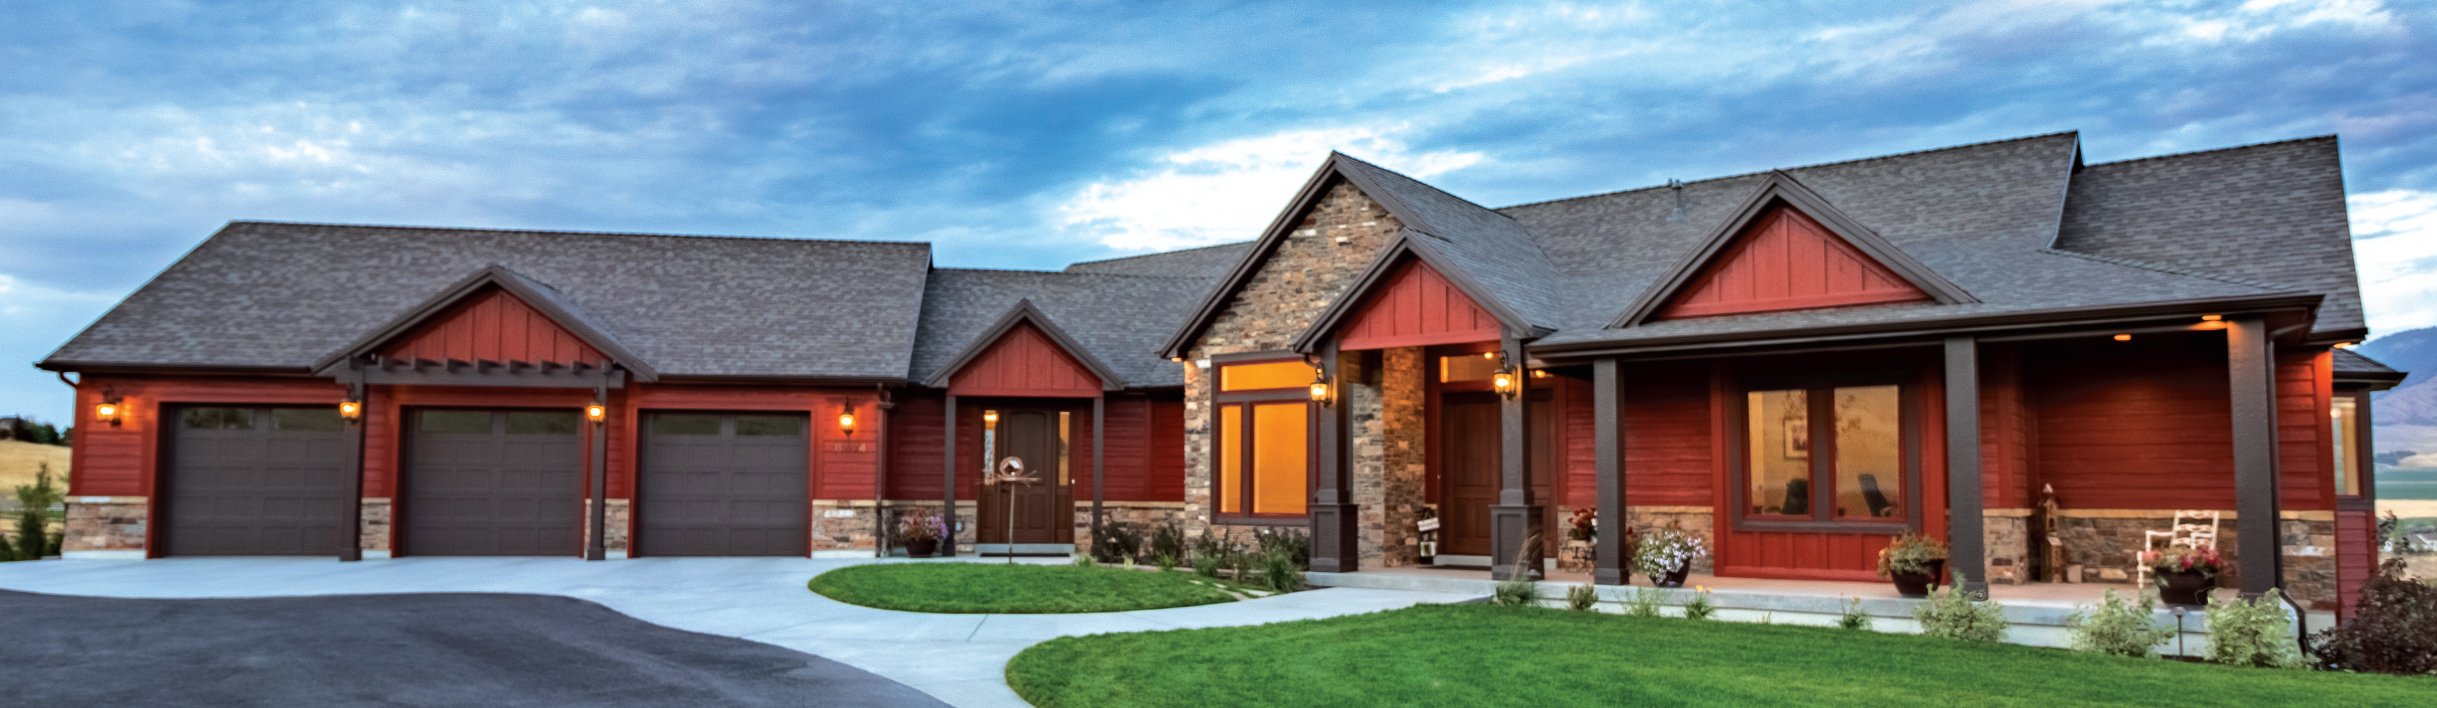 Pictures Of Homes Cvhba  Cache Valley Home Builders Association